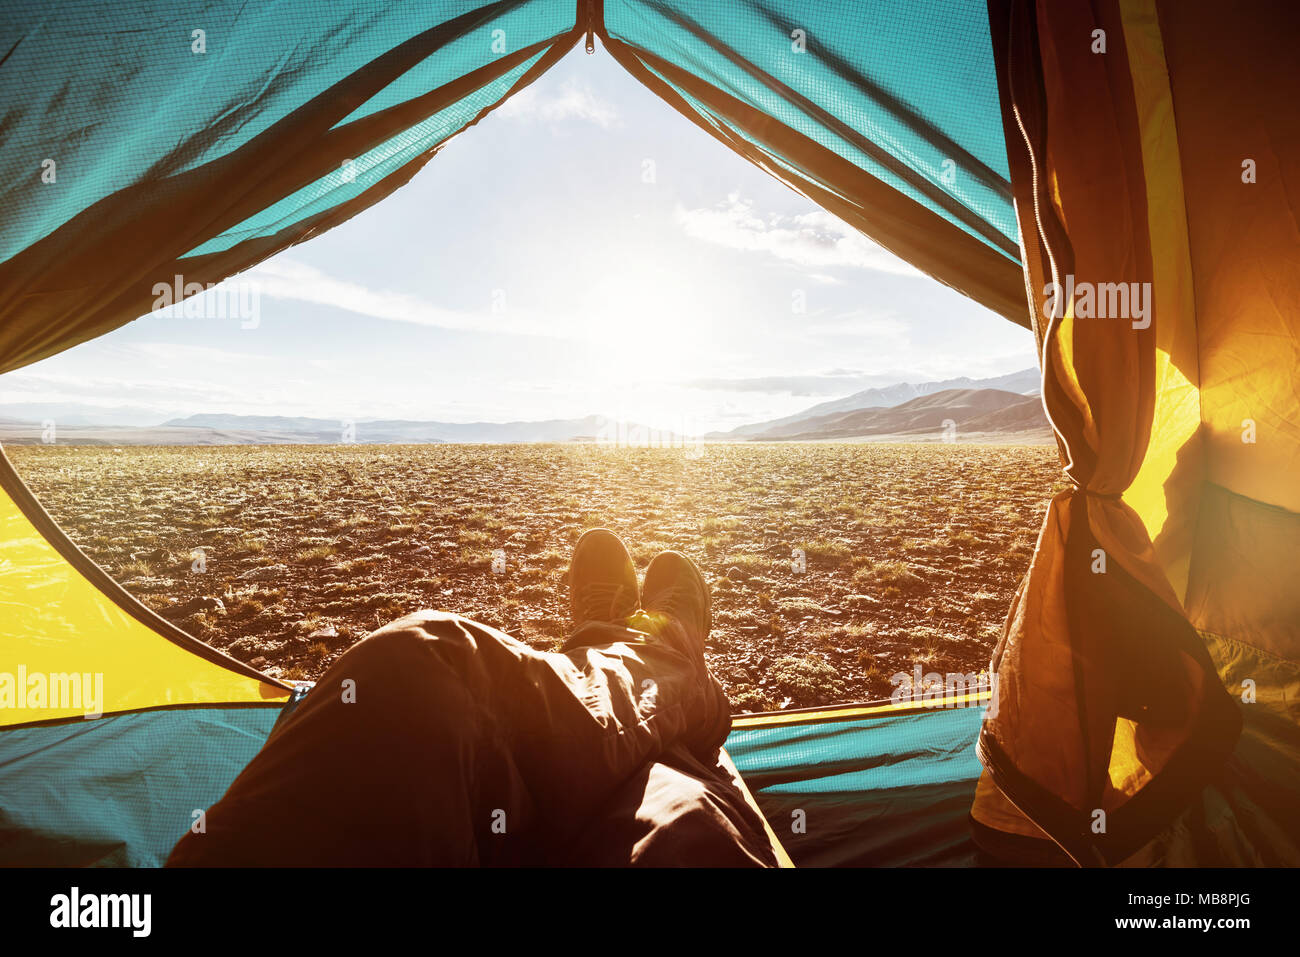 Man's legs tourist having rest tent view inside - Stock Image